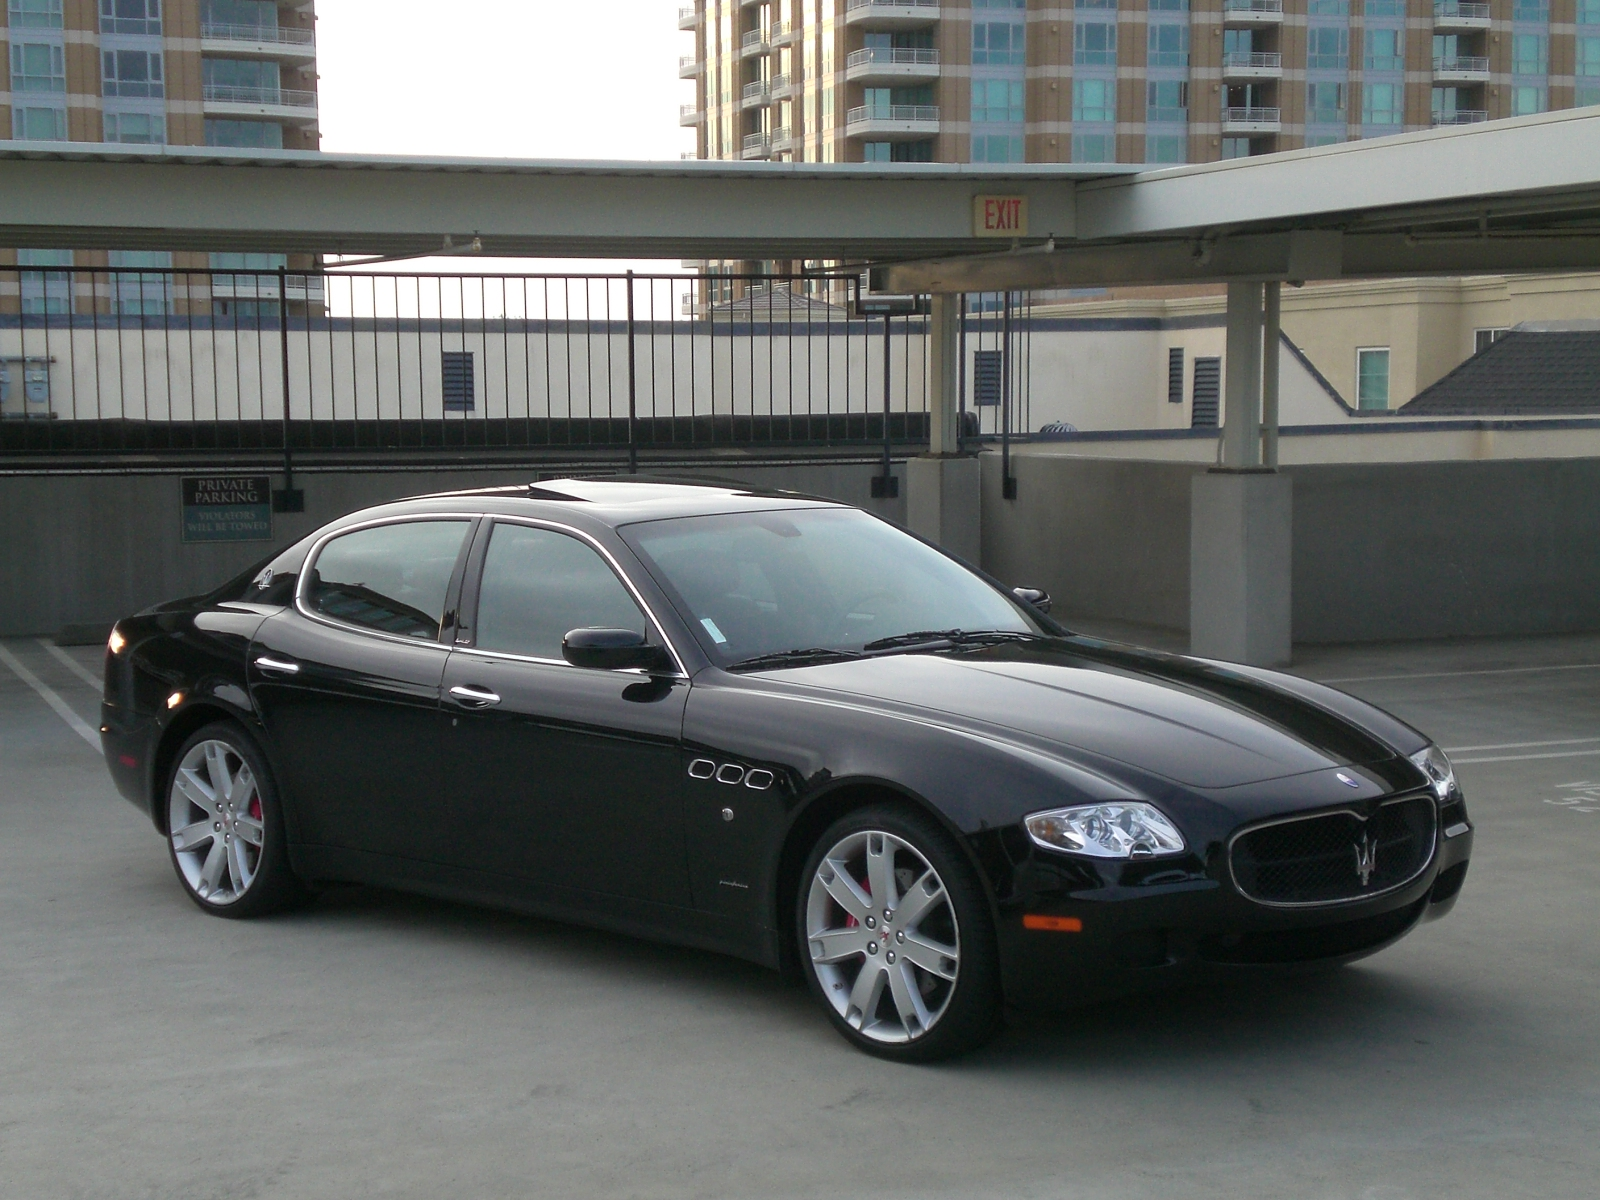 2007 maserati quattroporte pictures cargurus. Black Bedroom Furniture Sets. Home Design Ideas